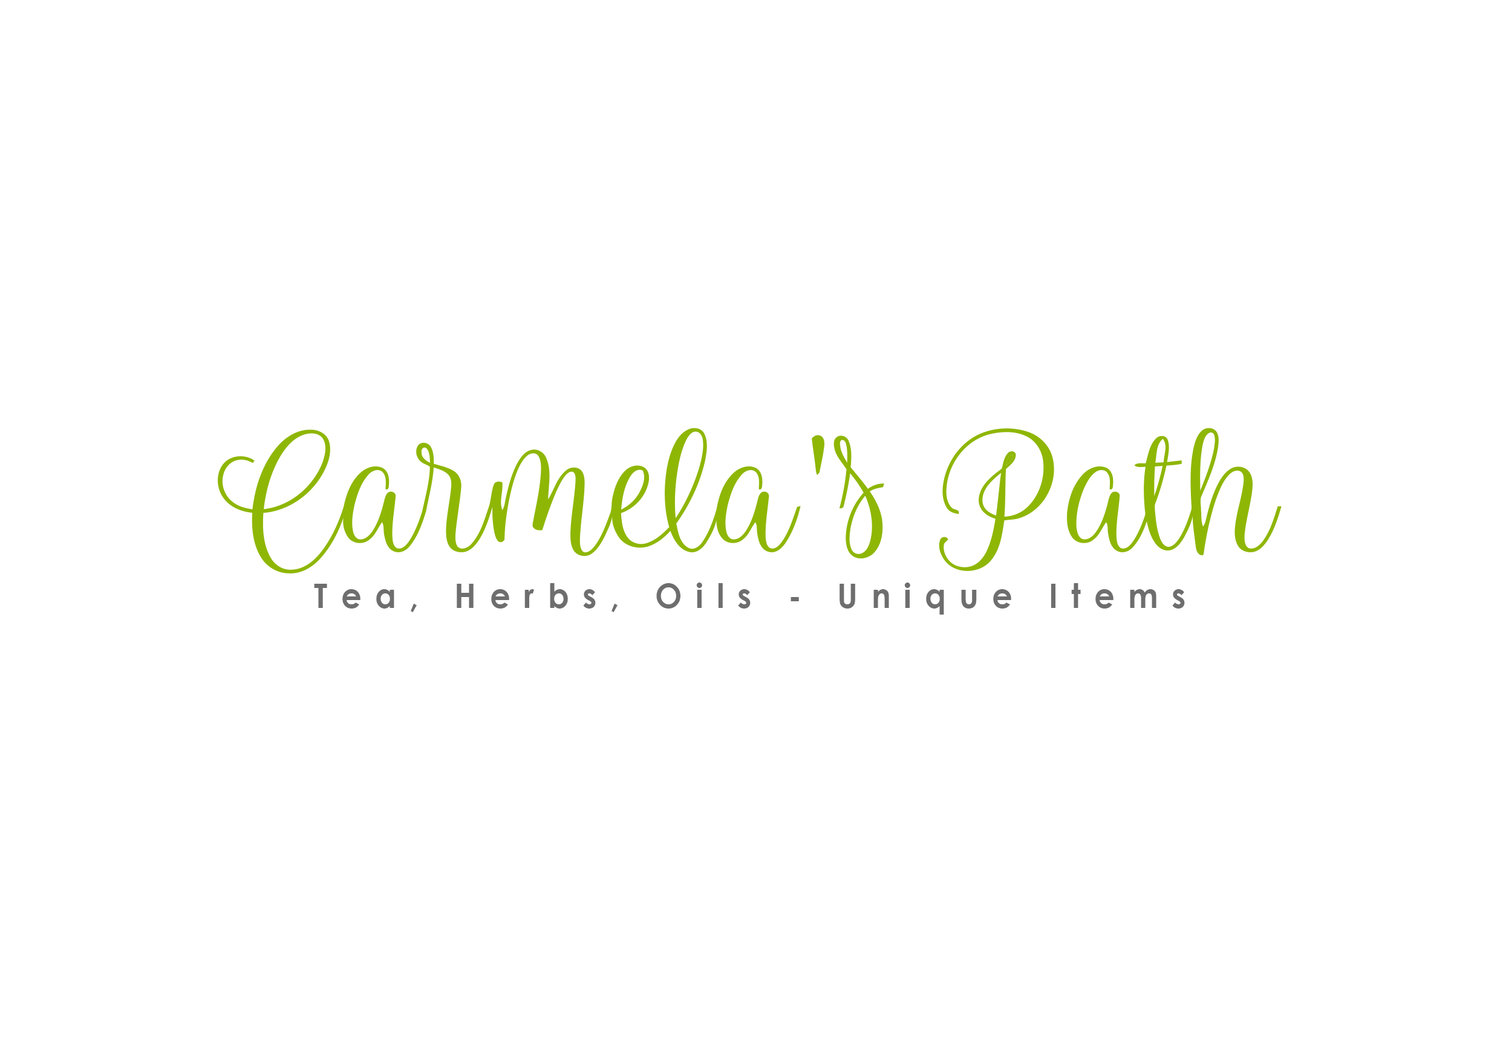 Carmela's Path Loose Leaf Tea